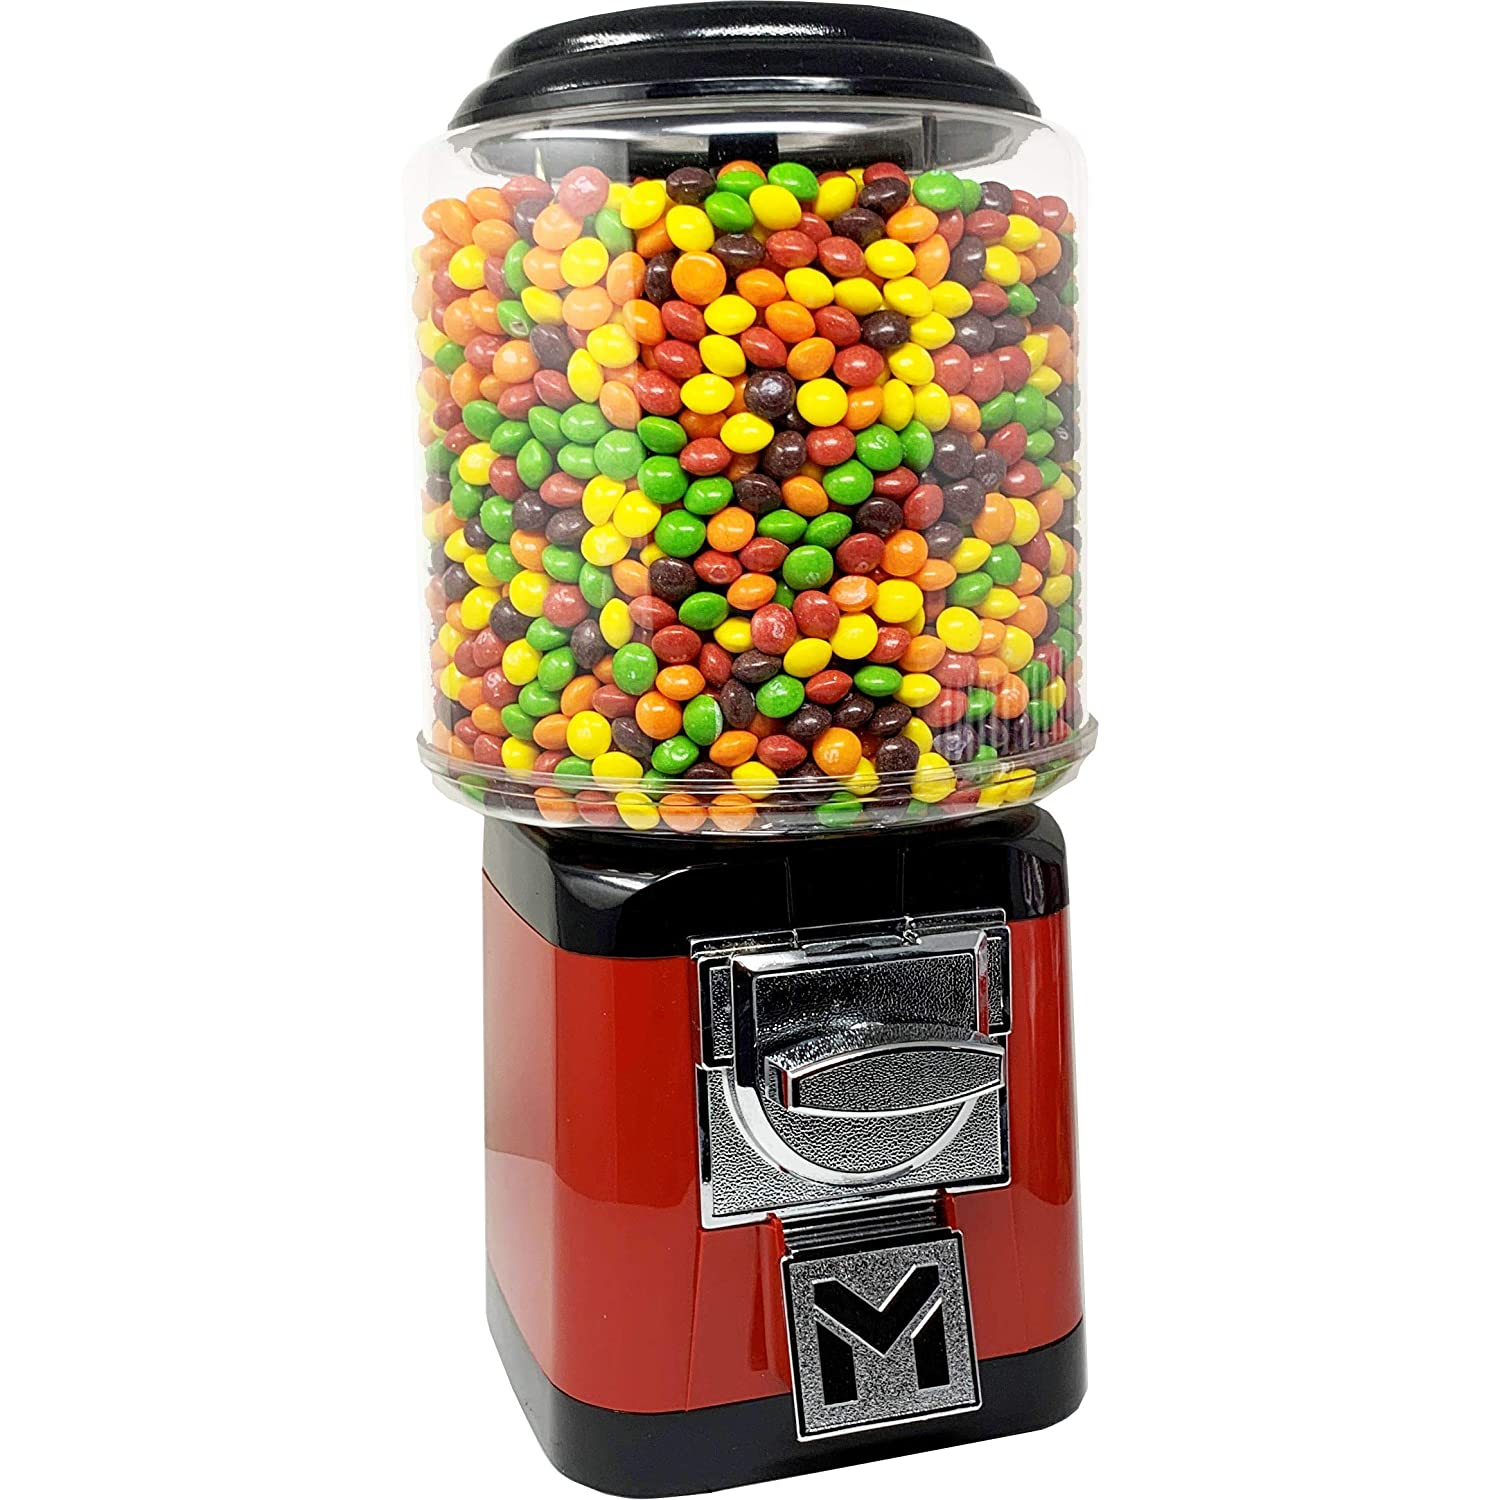 Candy Vending Machine Beauty products for Small American Gu Translated Nuts by Feed